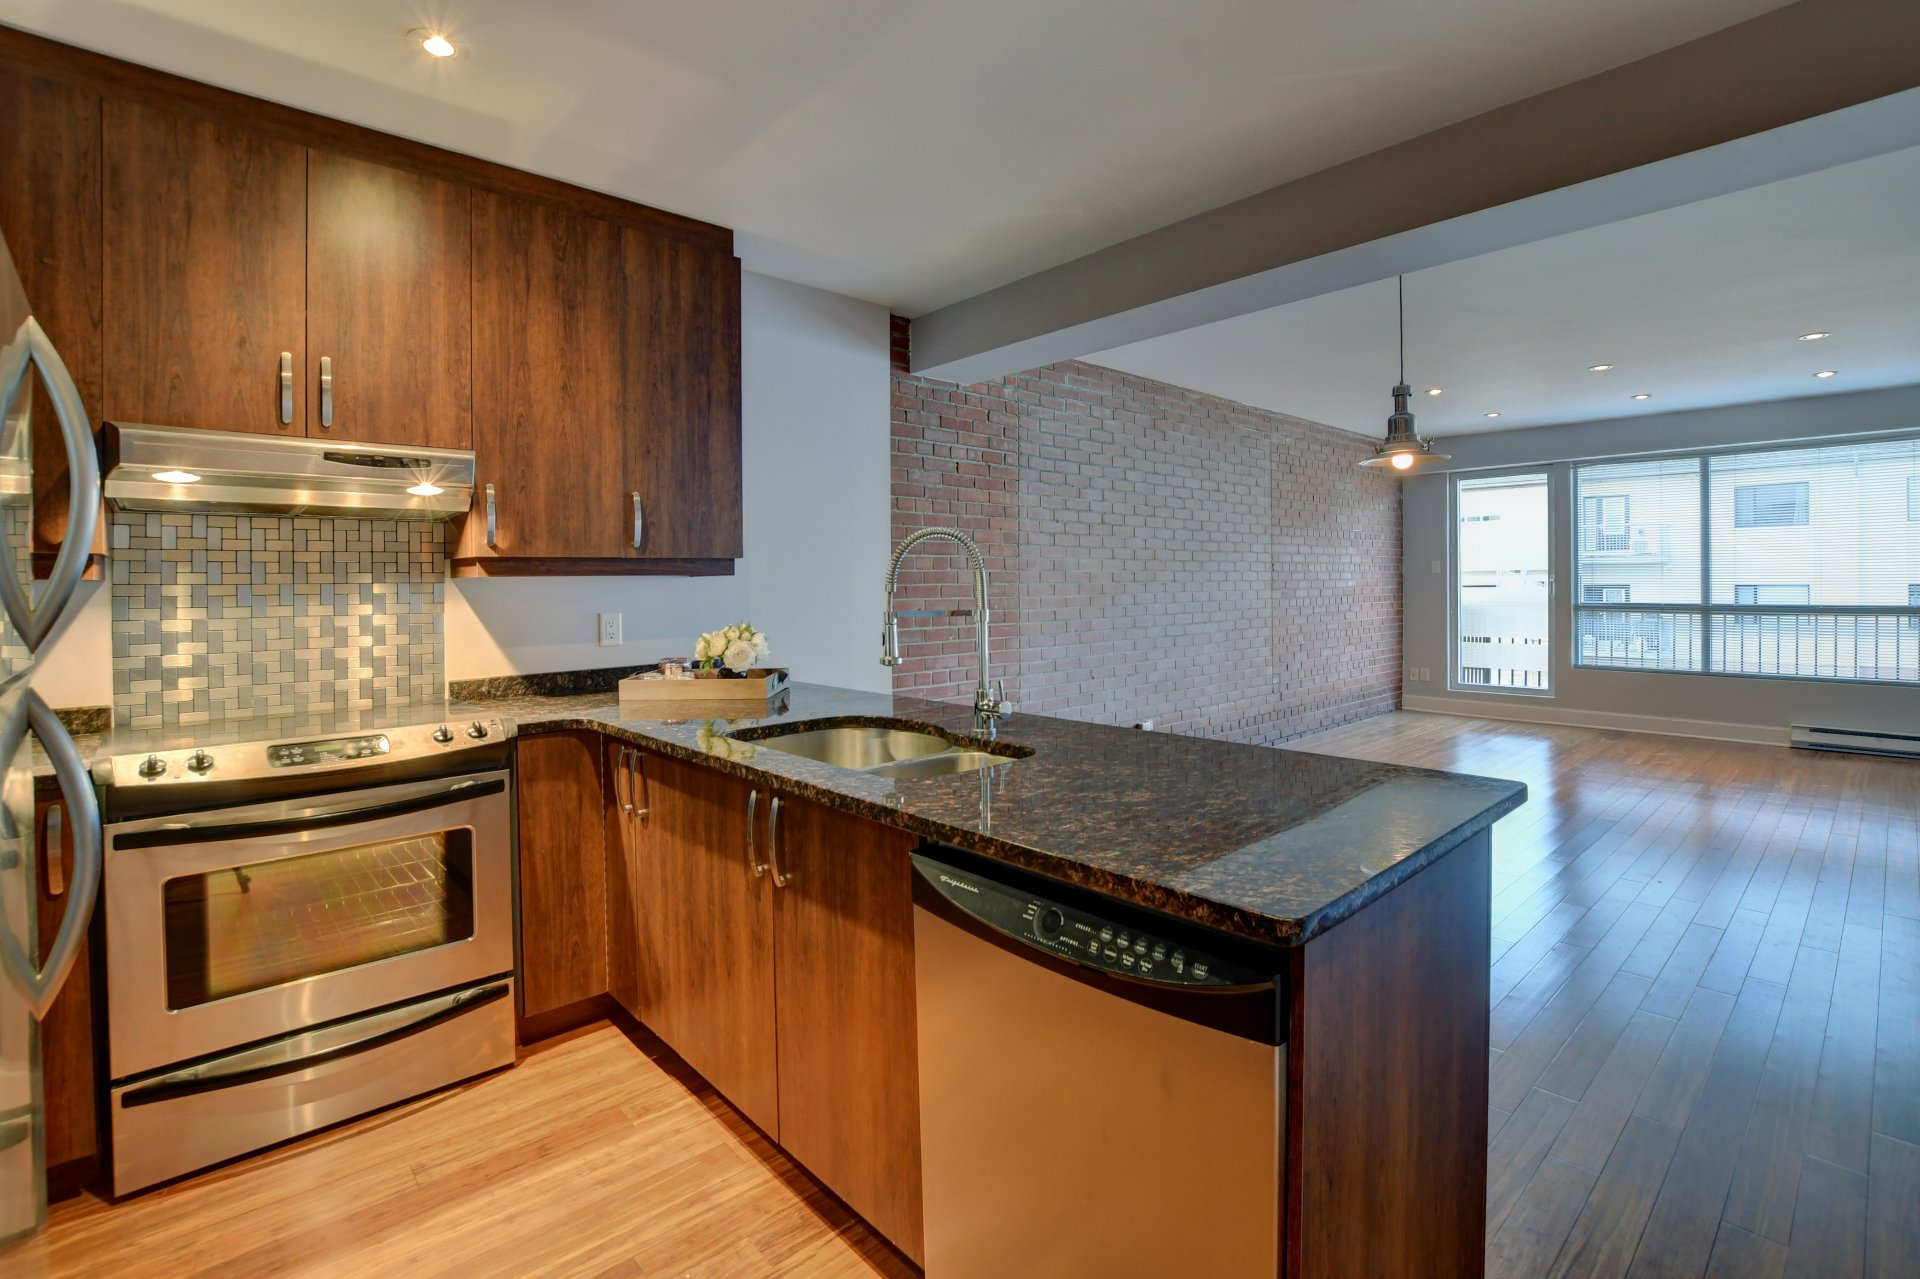 Renovation Salle De Bain Nivelles ~ Condo For Sale Lachine Montreal Buy Condo Lachine Montreal